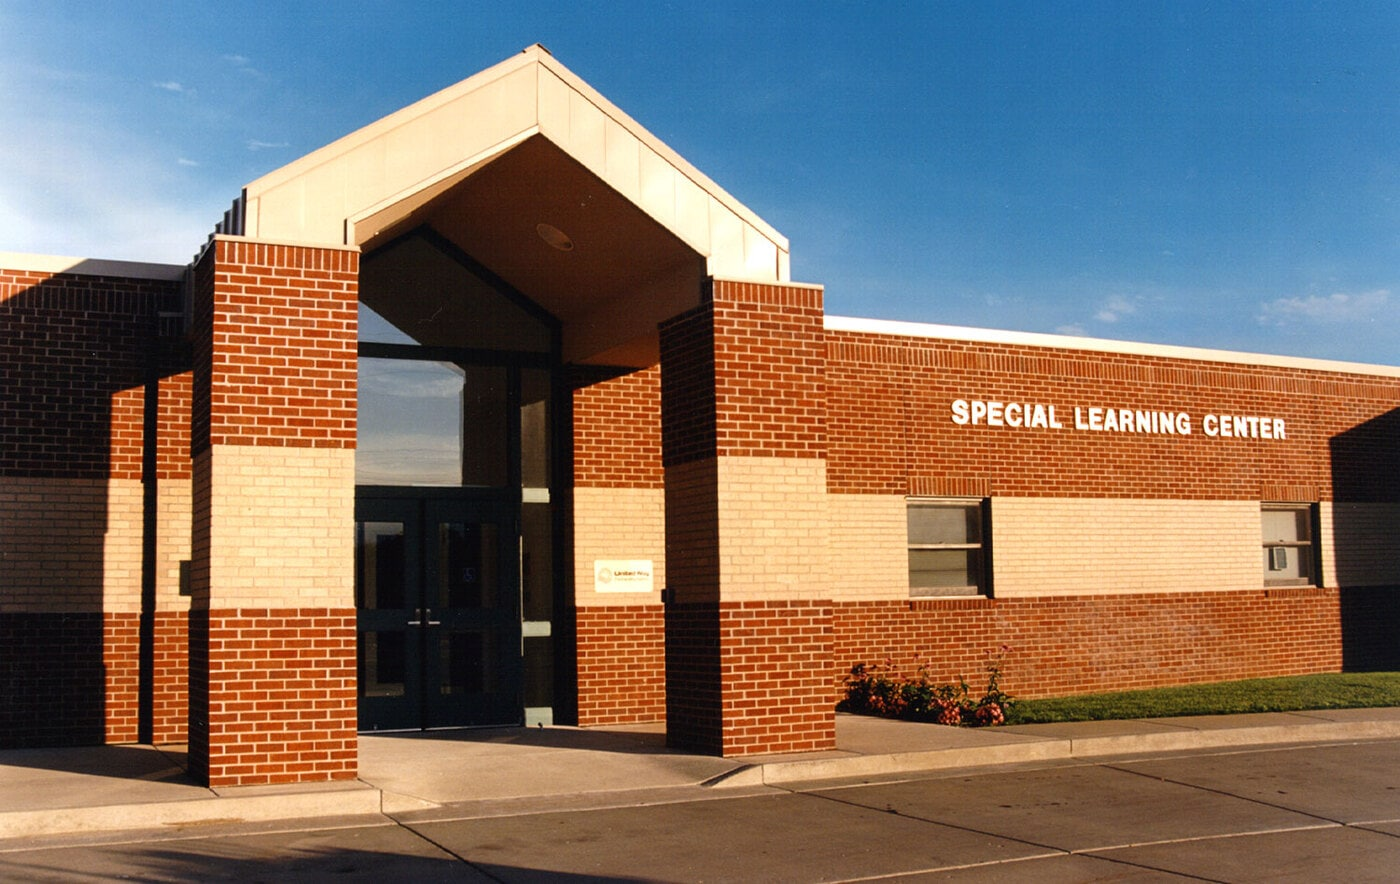 Special Learning Center